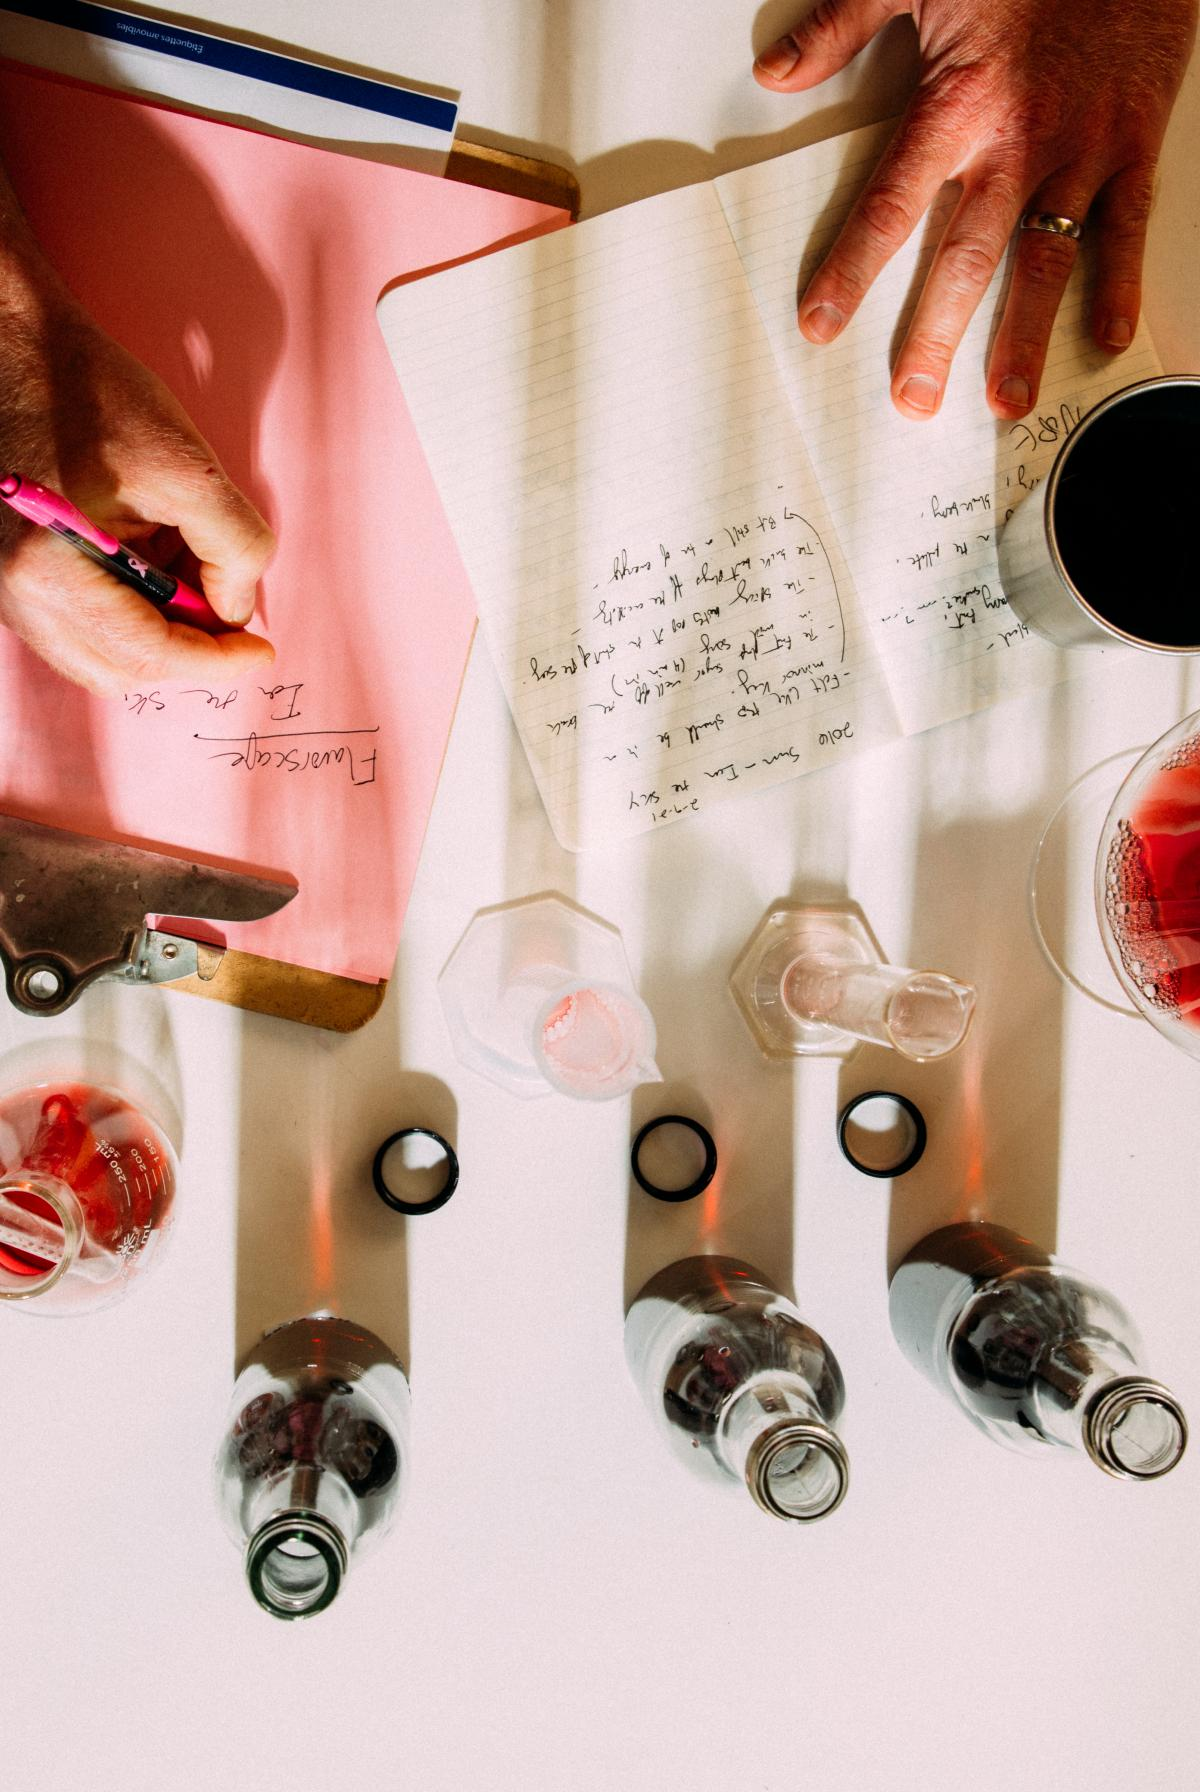 Overhead shot of a person taking lab notes with wine blending beakers around the perimeter